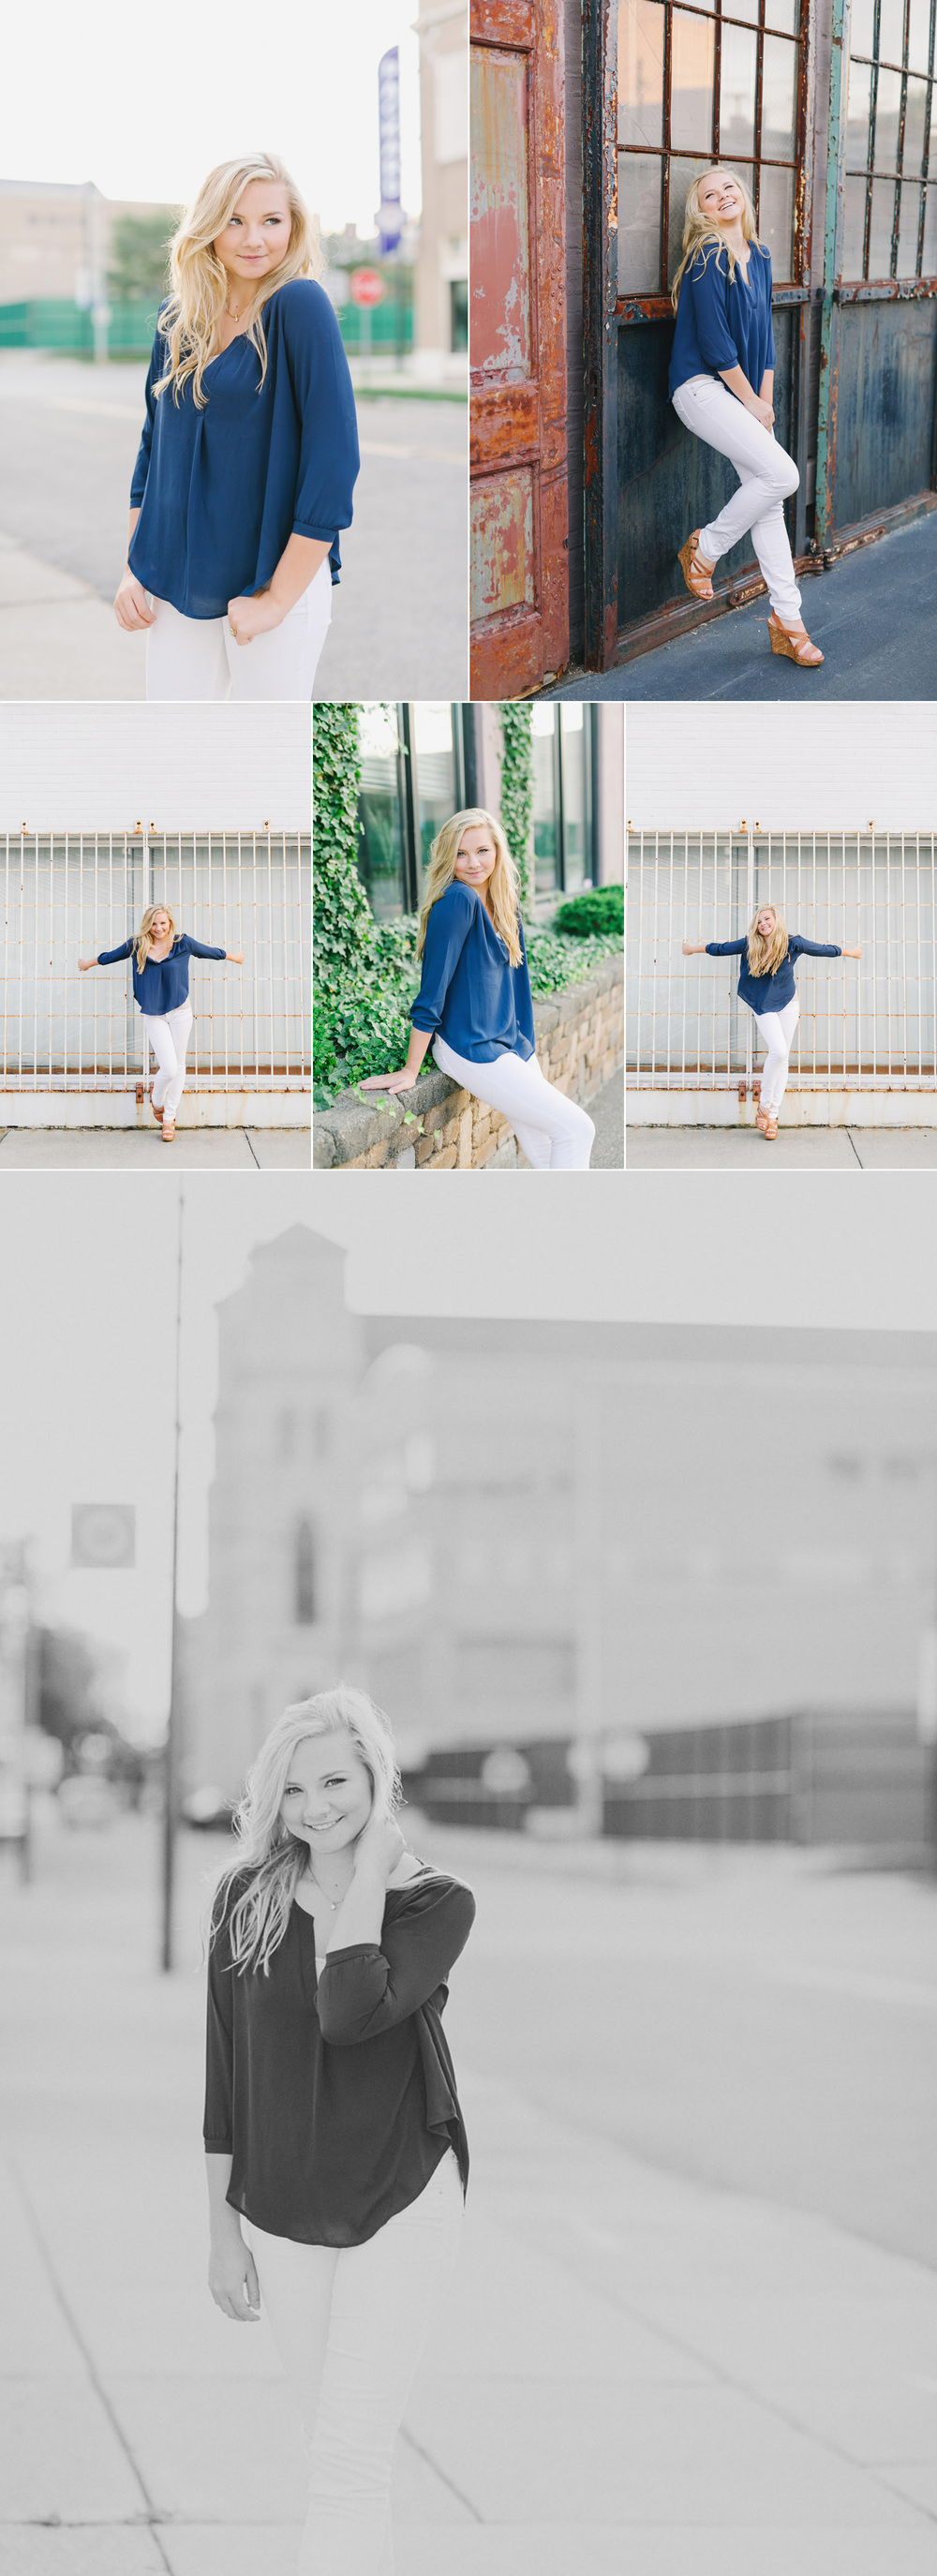 Fun-Urban-Senior-Pictures-Lux-Senior-Photography.jpg